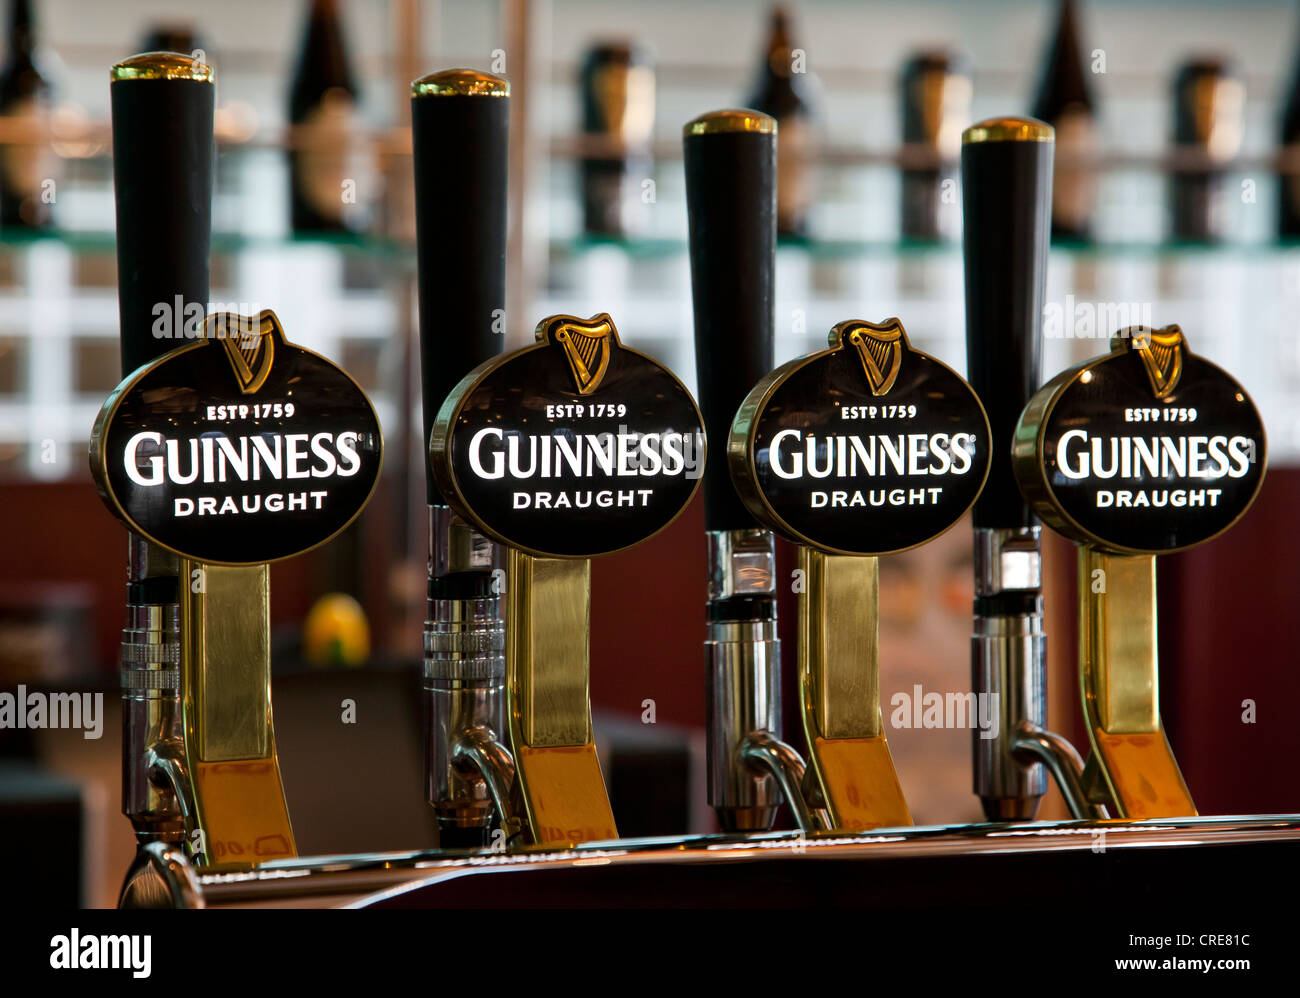 Taps with the Guinness logo in the Storehouse in the Guinness brewery, part of the Diageo drinks company, Dublin, - Stock Image